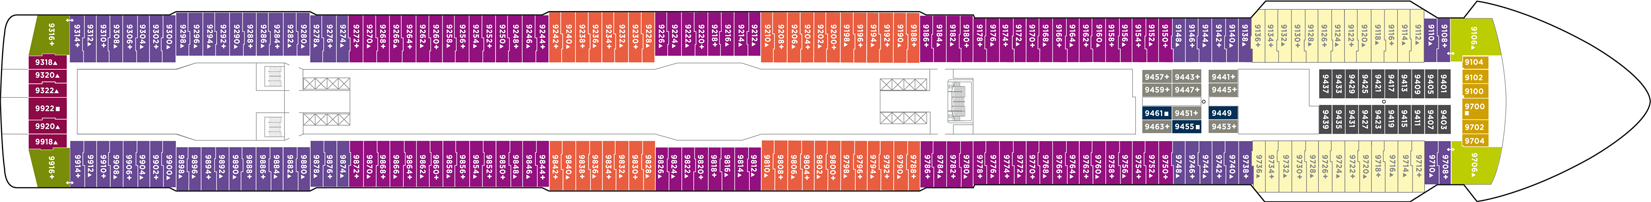 Norwegian Cruise Line Norwegian Breakaway Deck Plans Deck 9.png